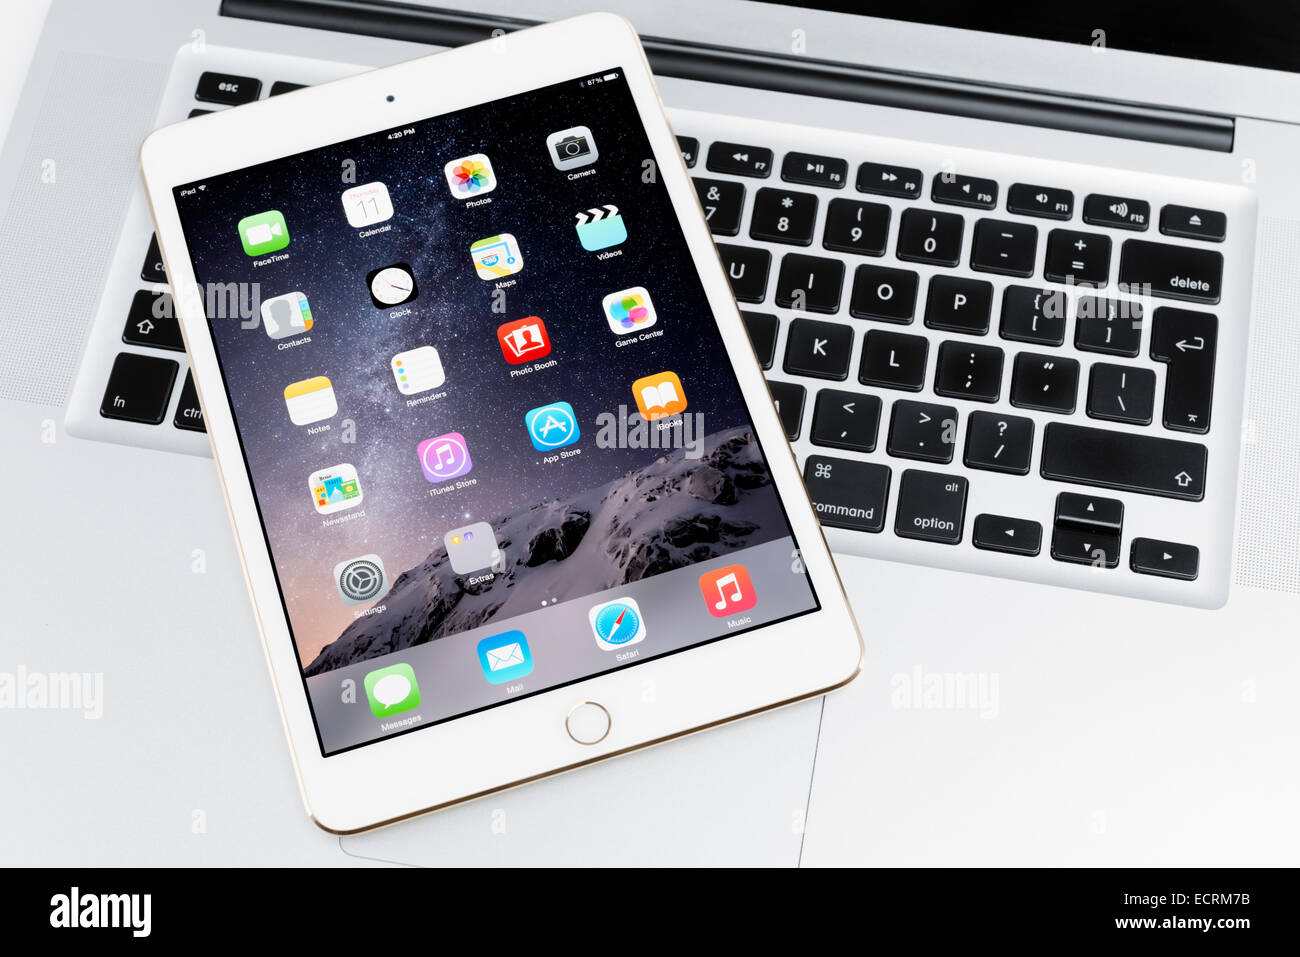 Apple iPad Mini 3 tablet on MacBook laptop computer - Stock Image